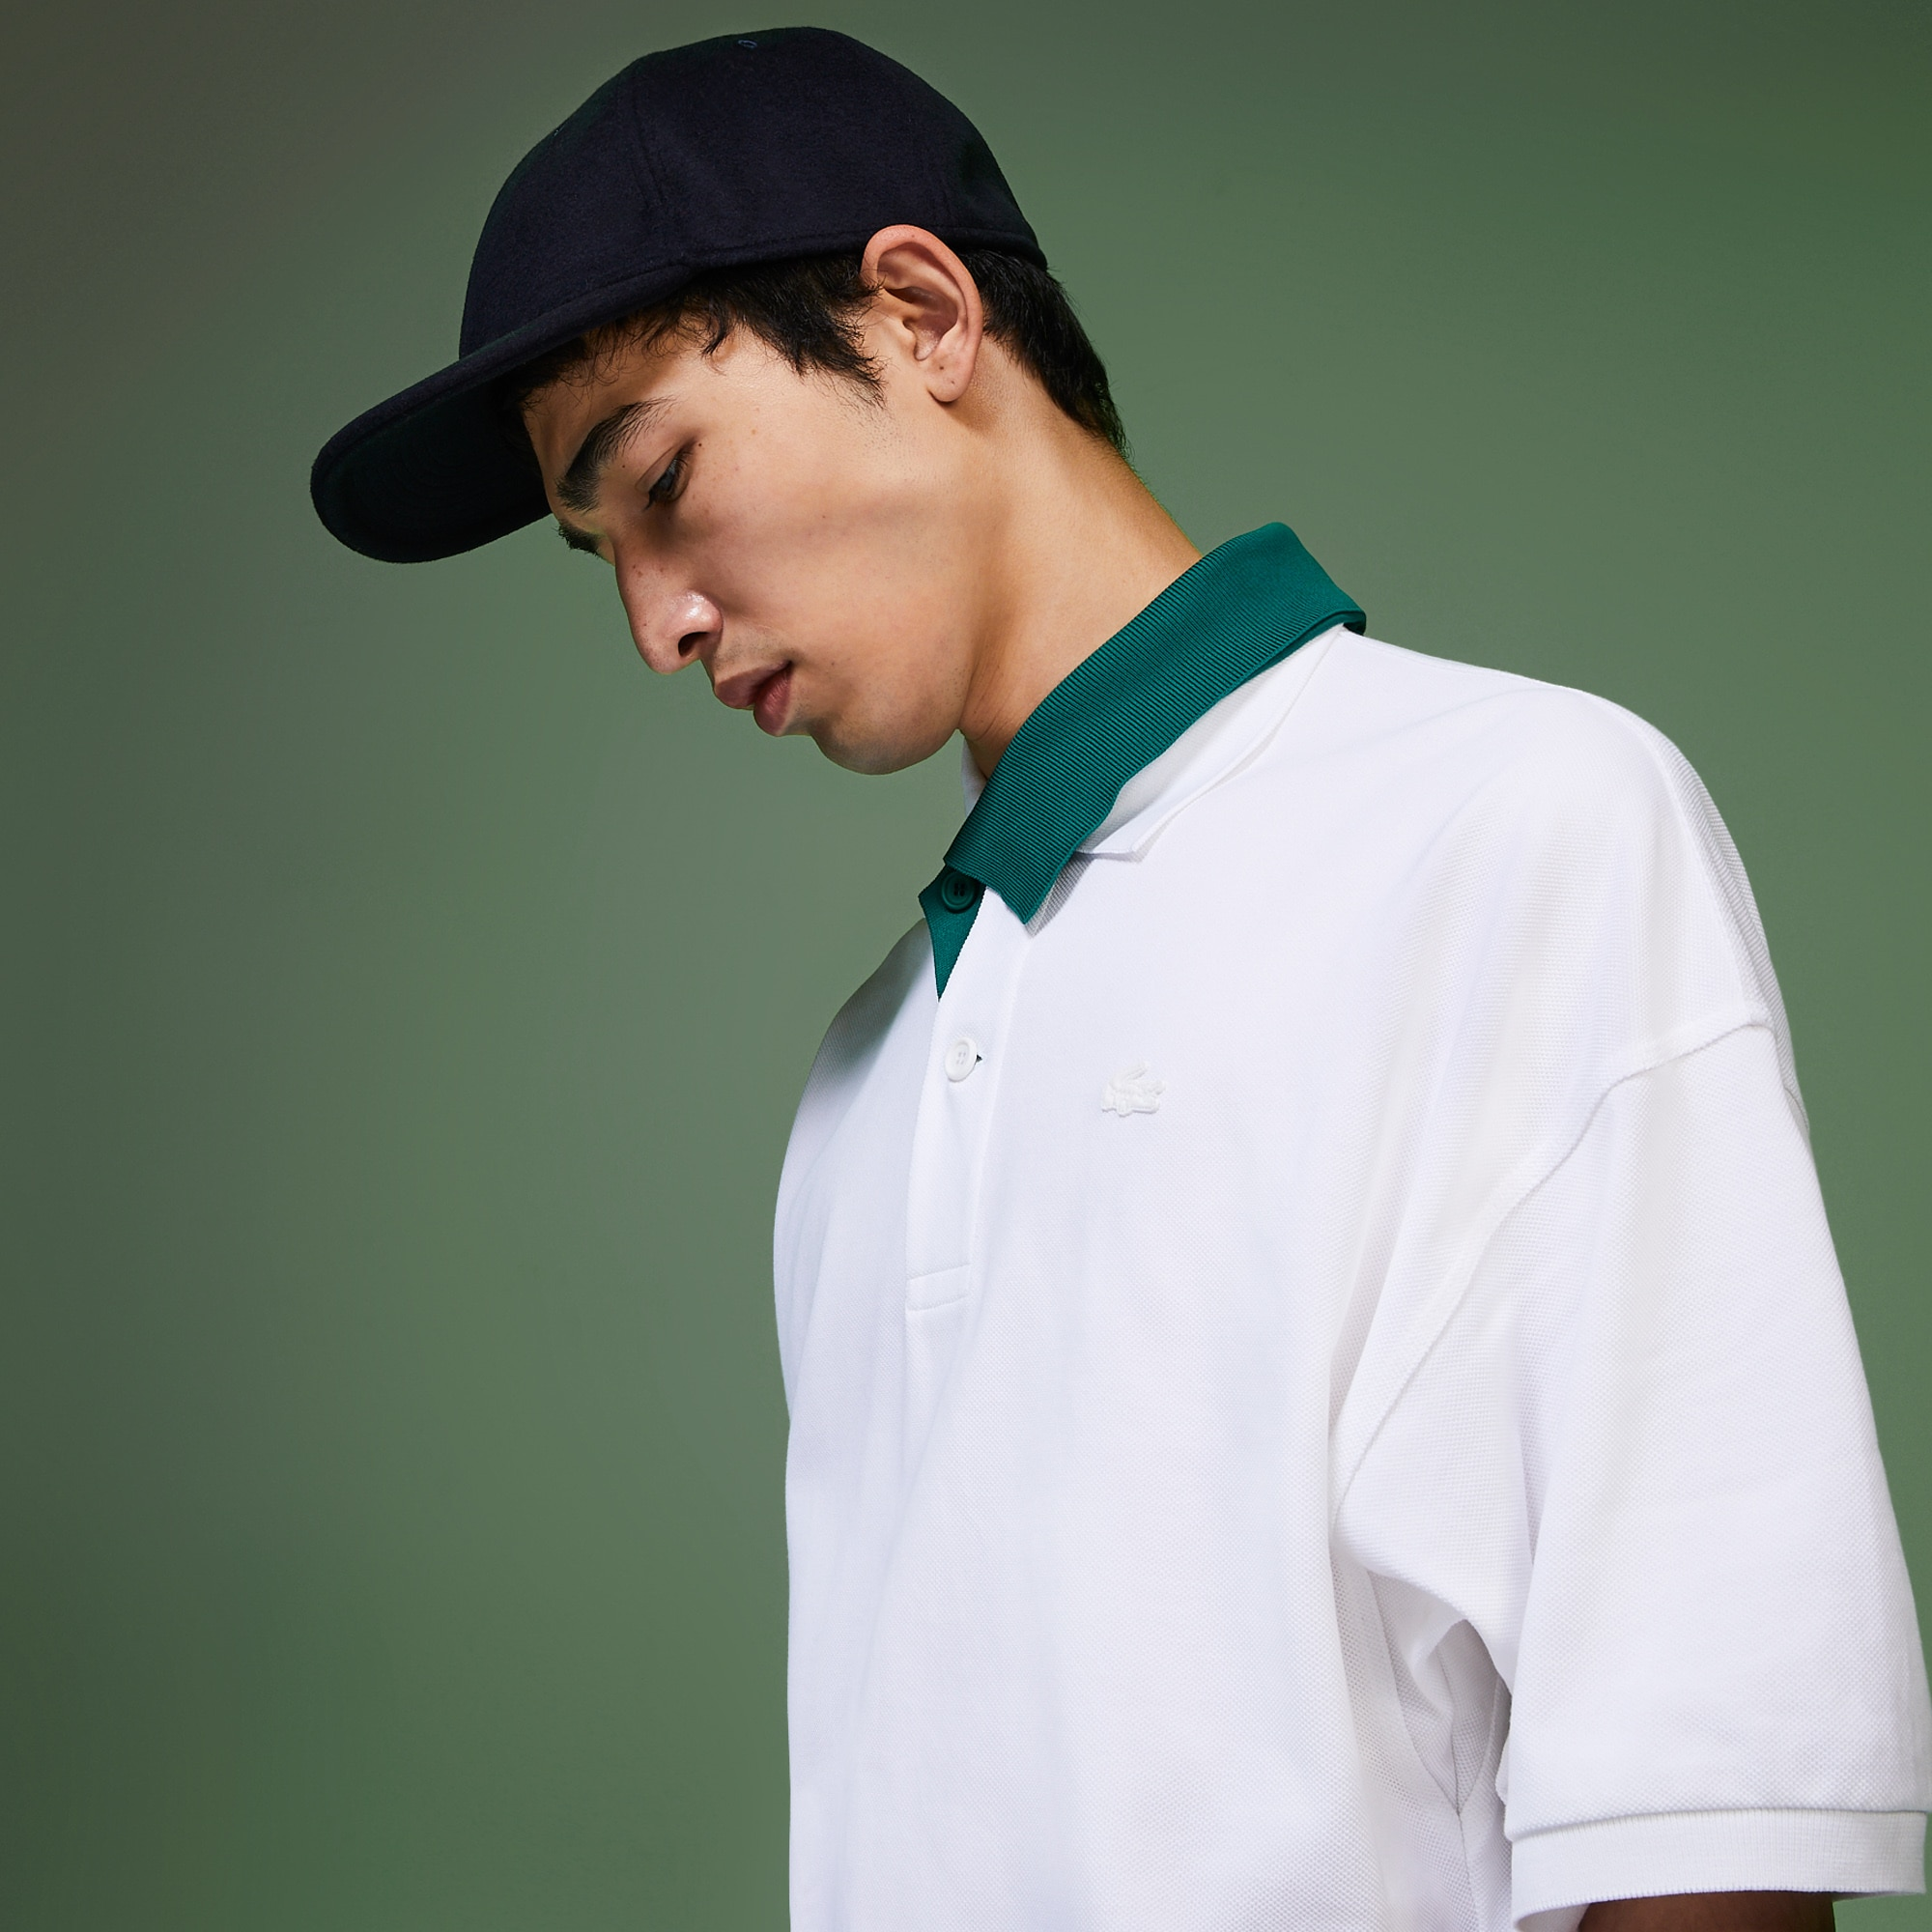 Men's Fashion Show Polo Shirt with Contrasted Collar